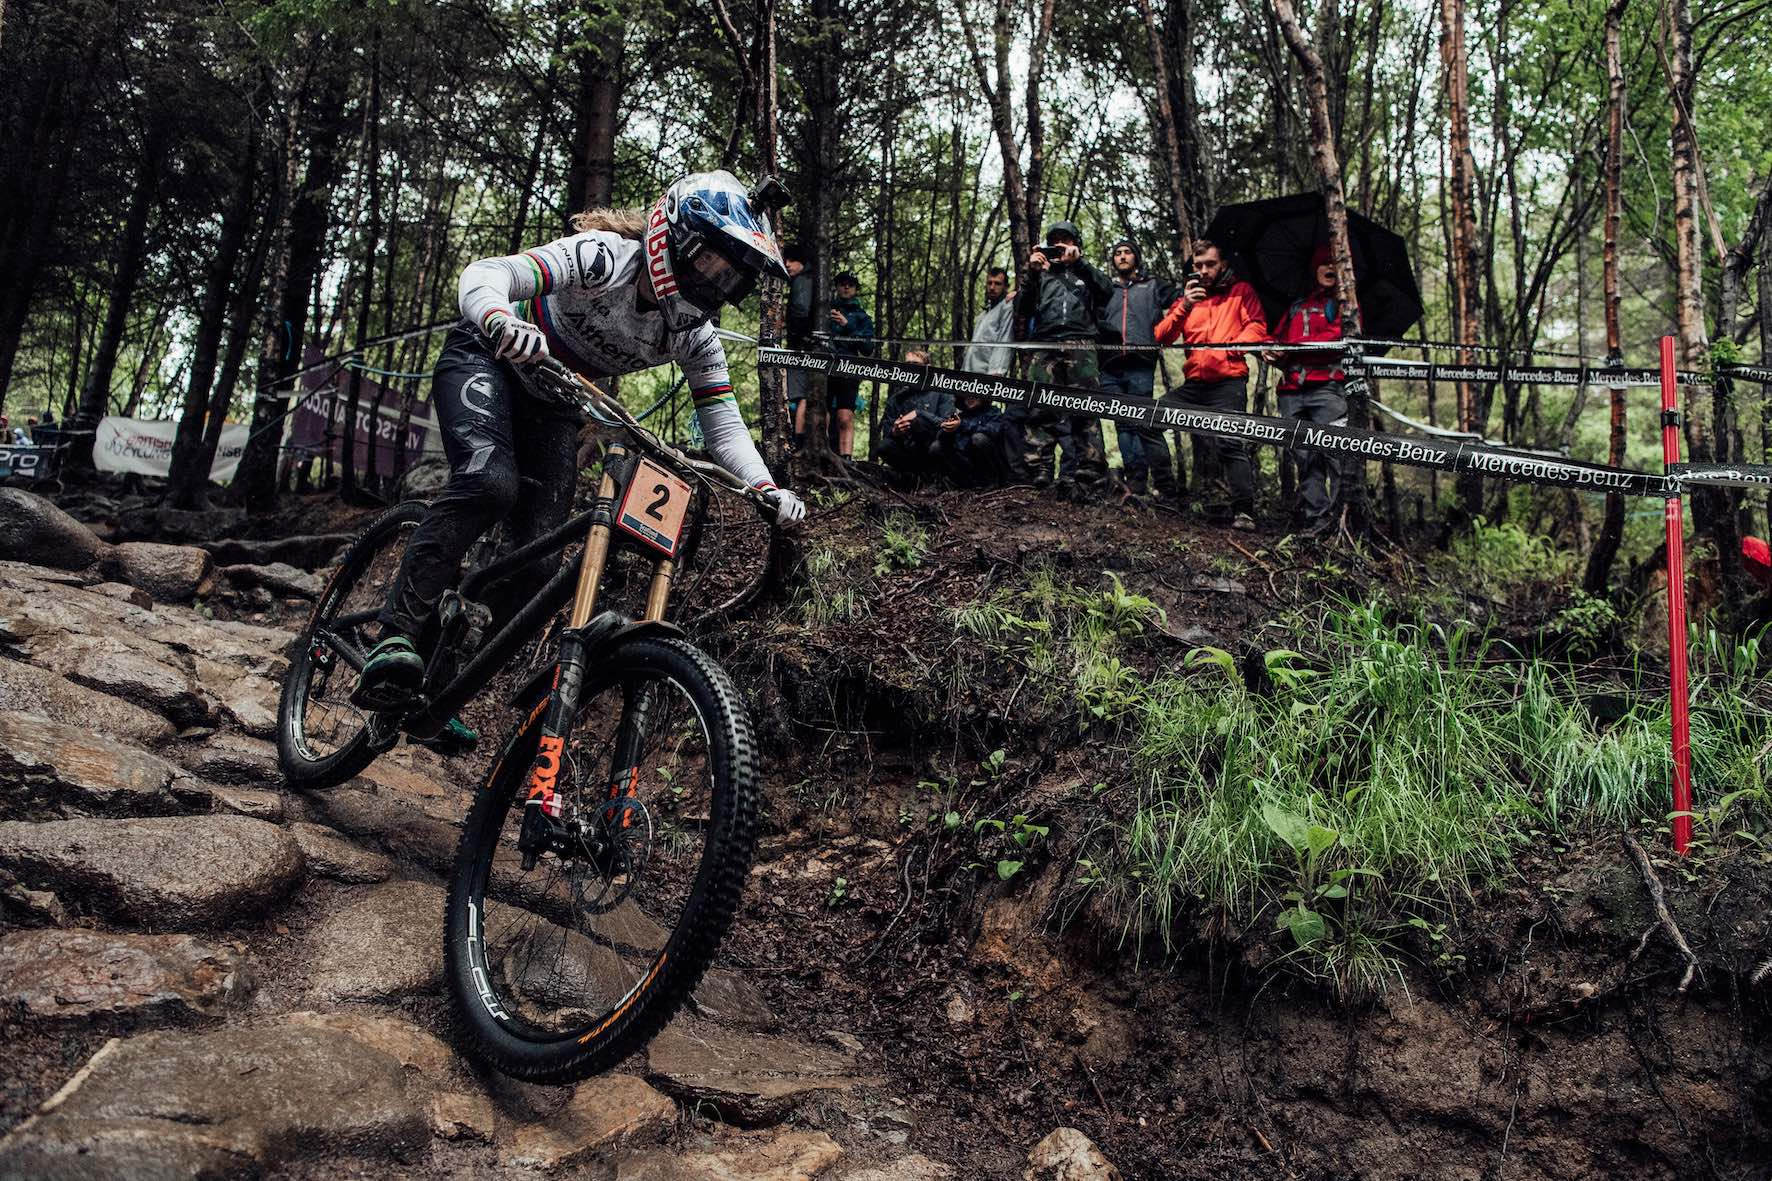 Rachel Atherton winning the 2019 Downhill MTB World Cup at Fort William